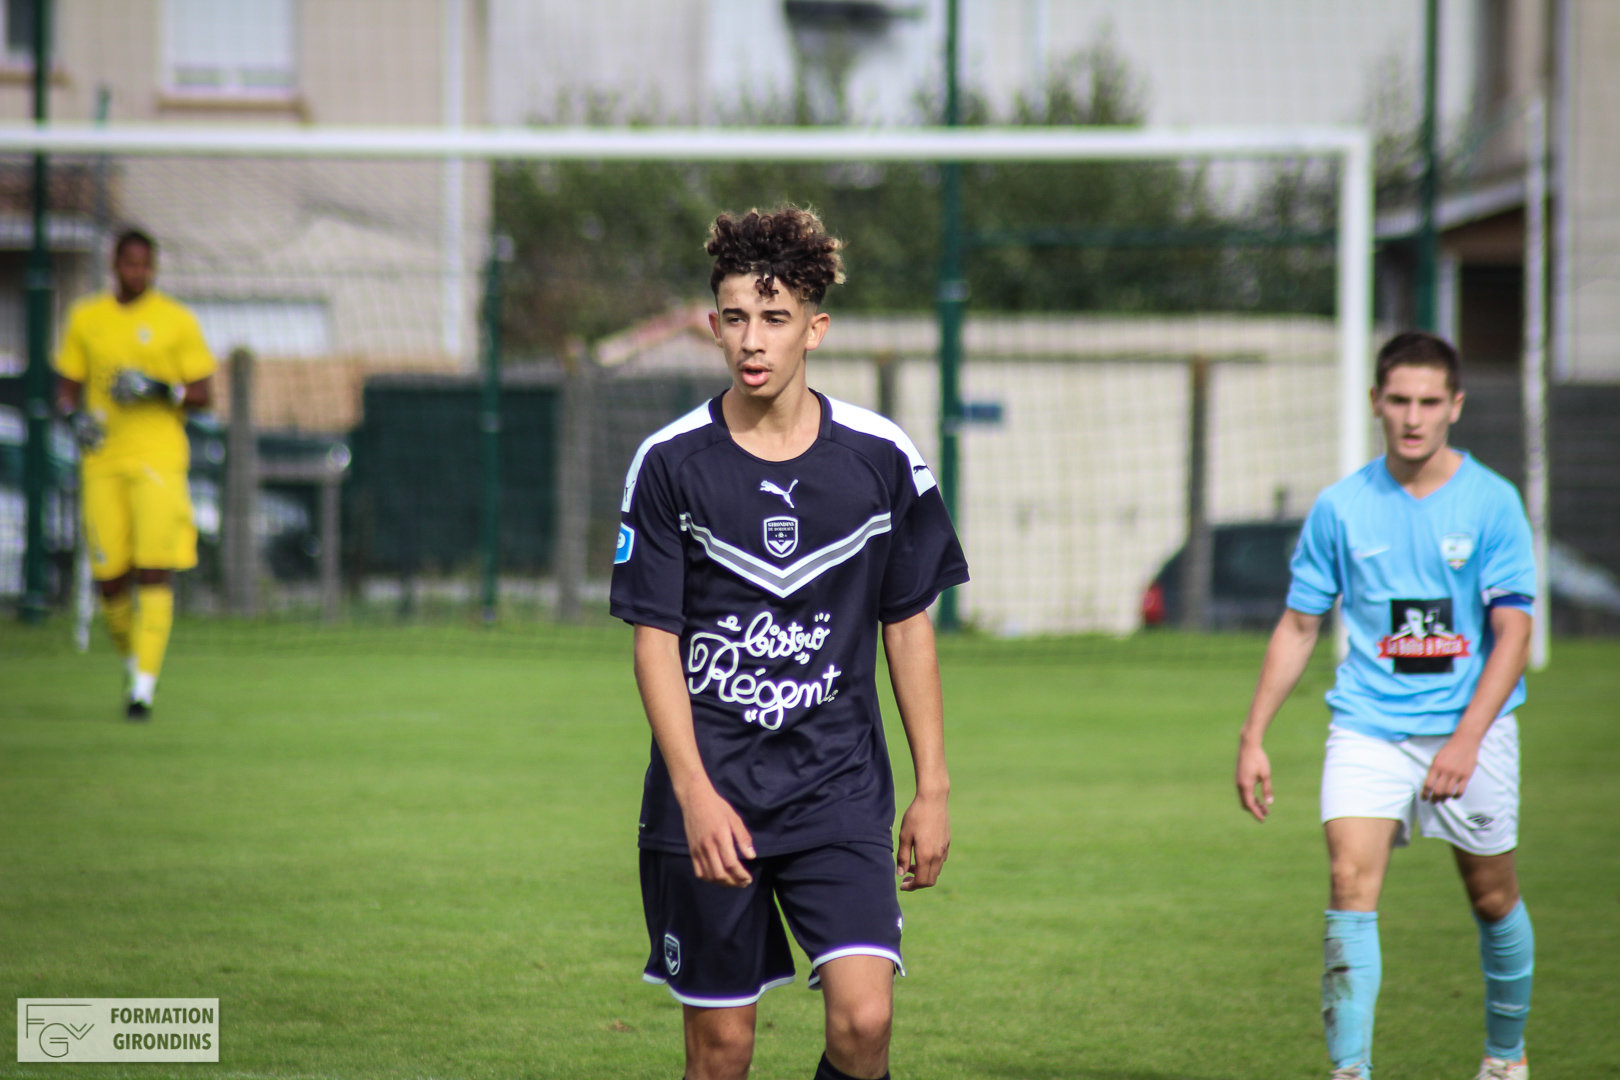 Cfa Girondins : Walid Gharnout signe stagiaire pro - Formation Girondins